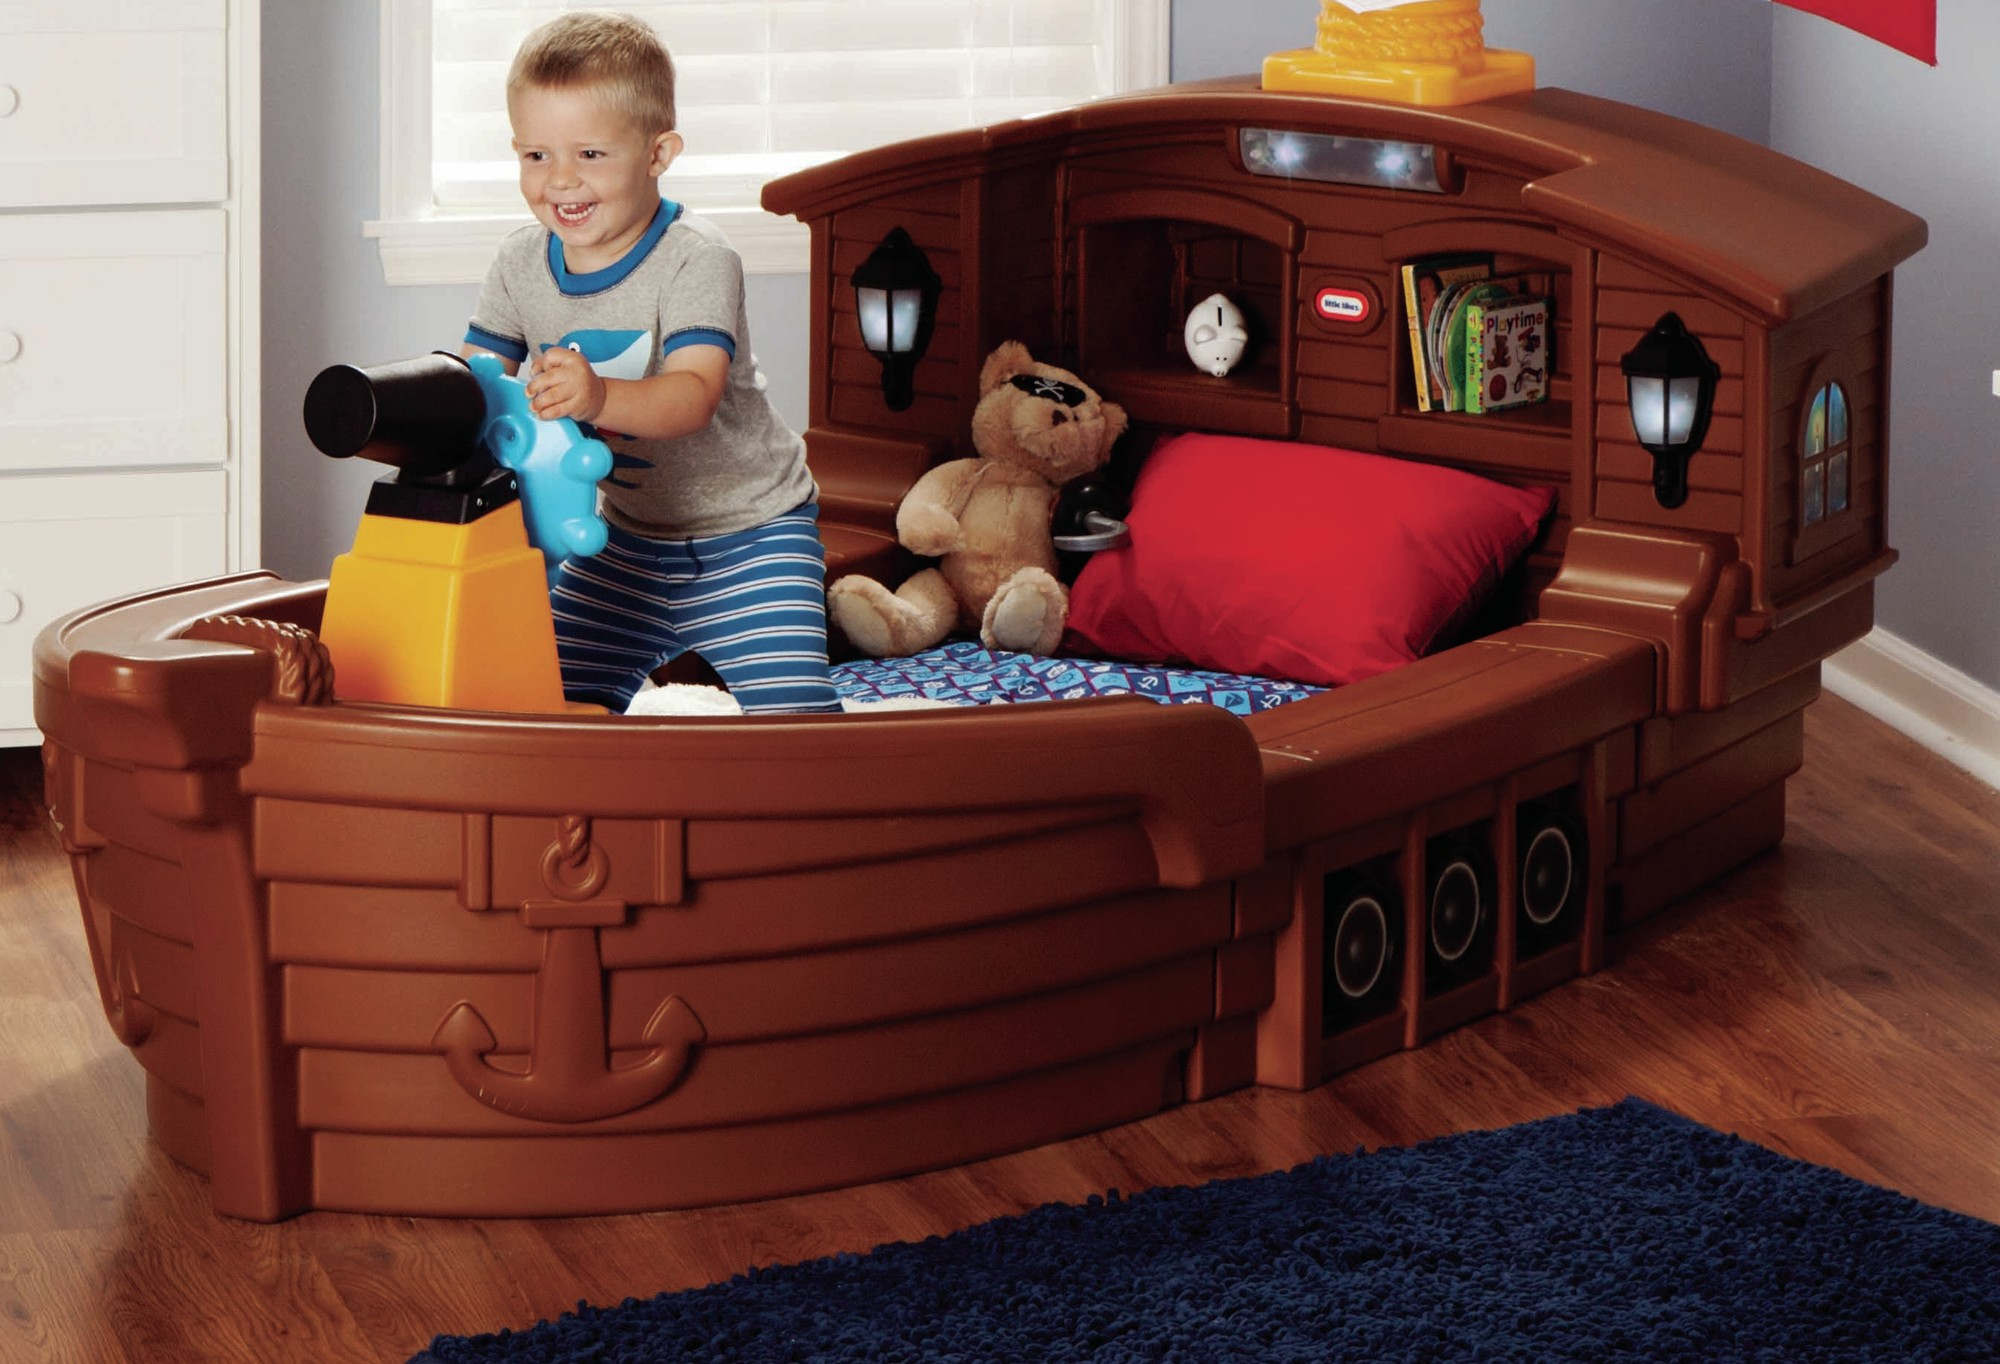 Jake Pirate Bed | Pirate Ship Bed Little Tikes | Little Tikes Pirate Bed